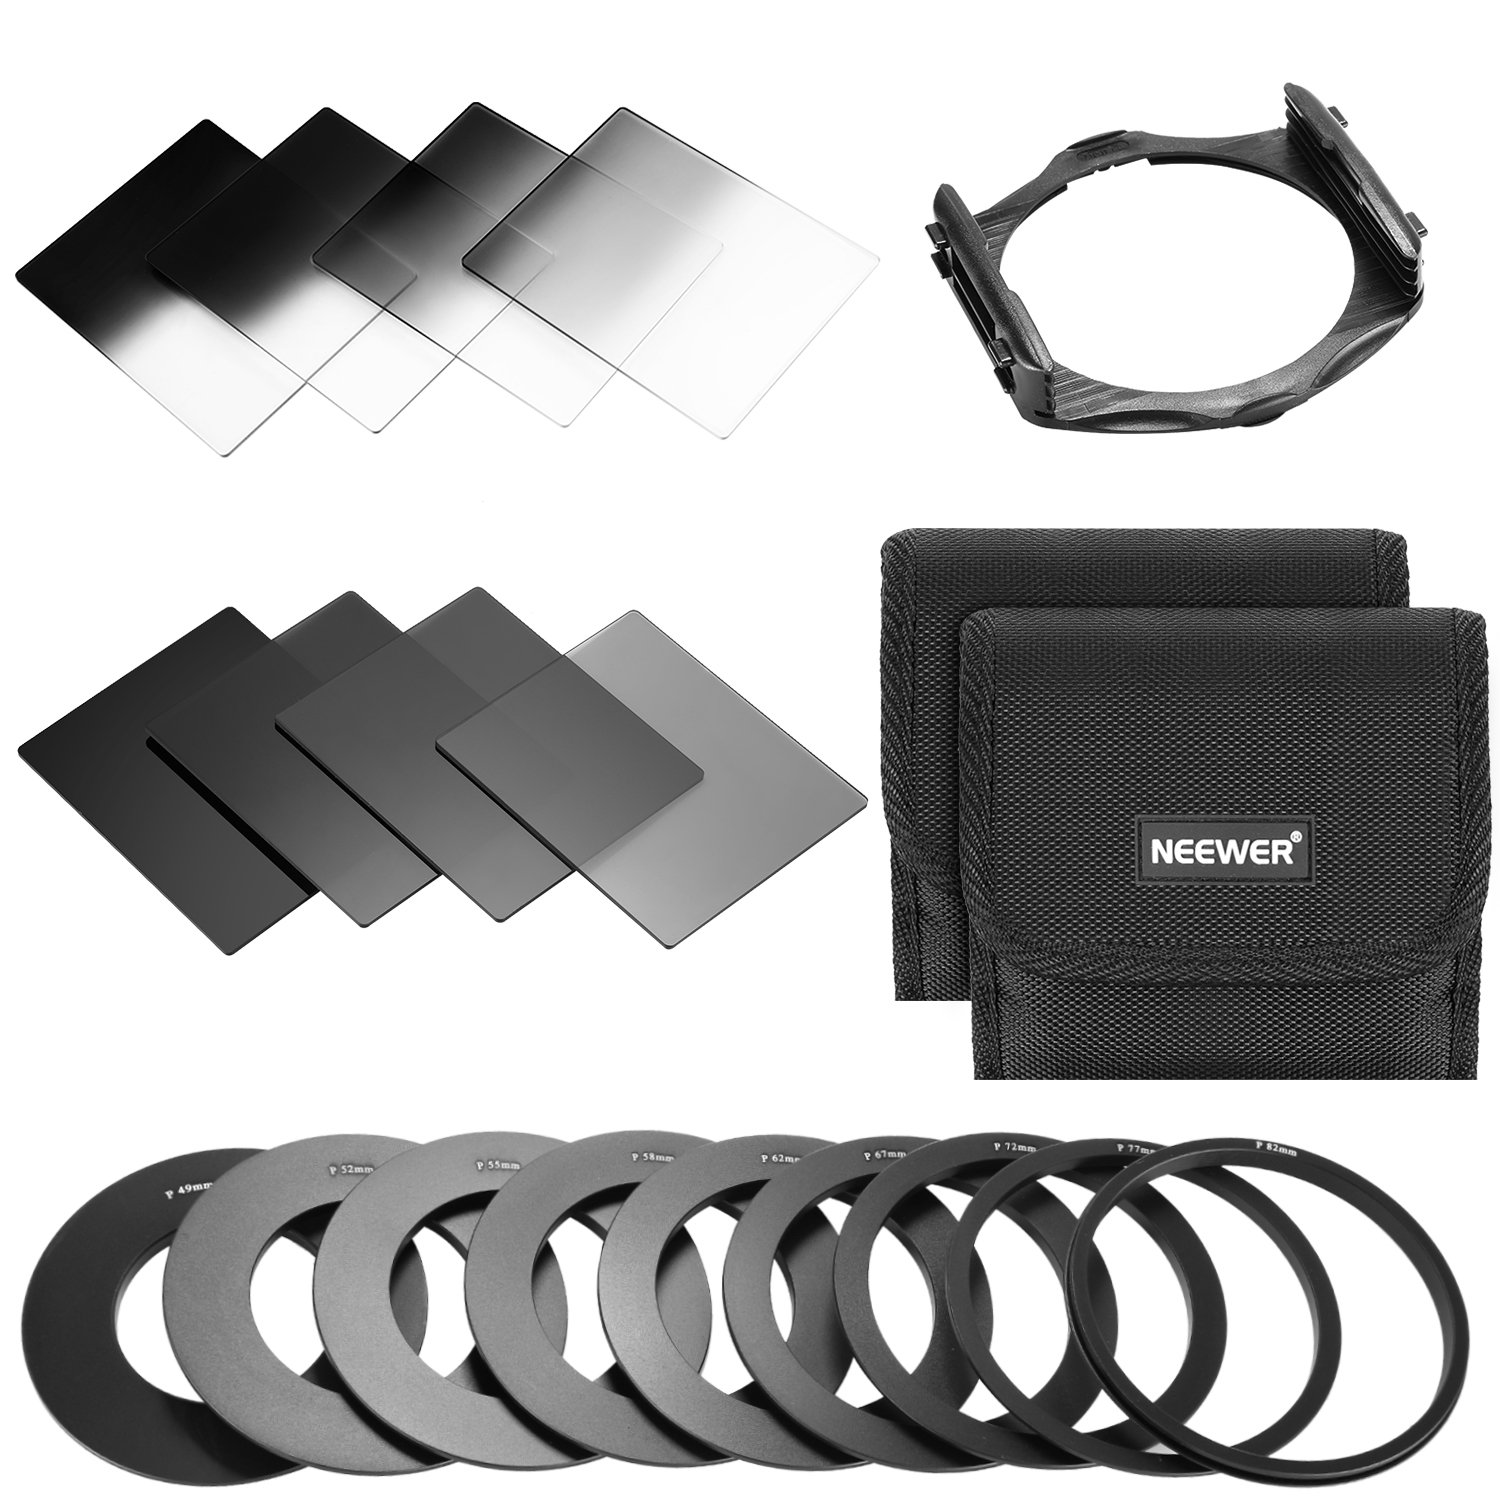 Neewer Square Lens Filter ND Filter Kit for Cokin P Series for DSLR Camera Lens:8-Piece Full and Graduated ND Filters(ND2/4/8/16, G.ND2/4/8/16),9 Adapter Rings(49-82mm),2 Carry Pouches,1 Filter Holder 10090486